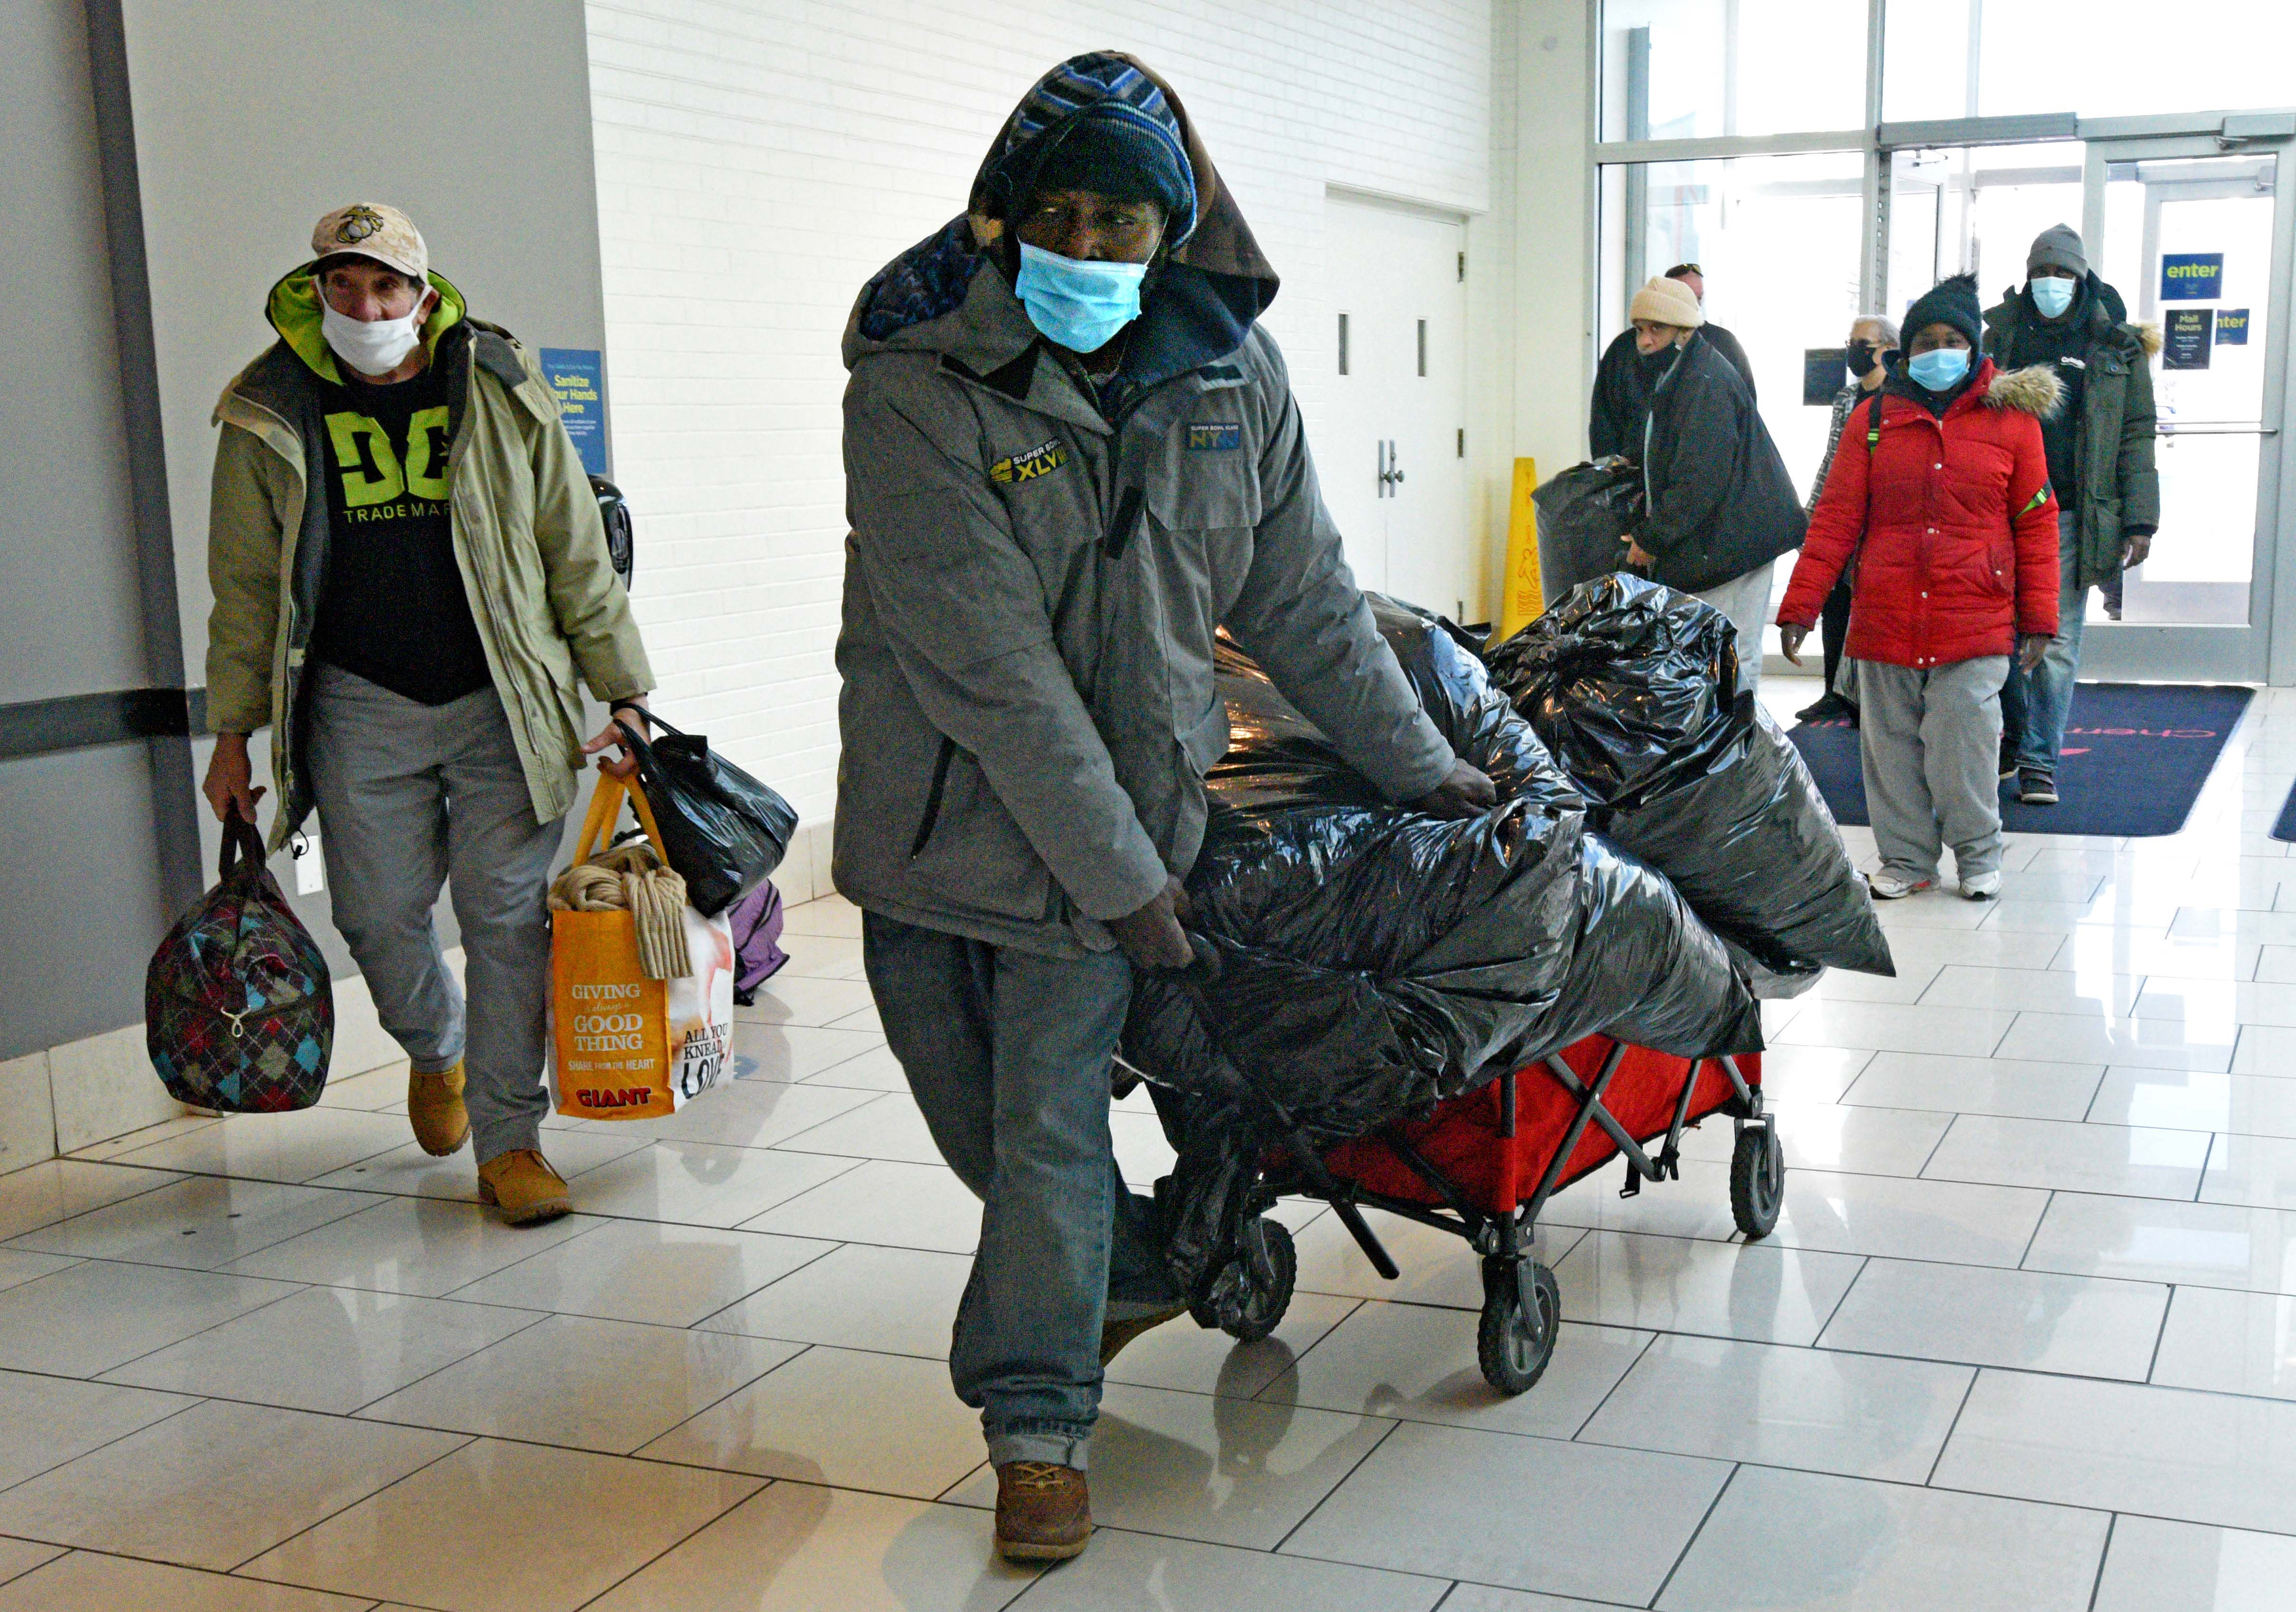 Unhoused individuals, led by Tawanda Jones, bring blankets and their belongings into the Cherry Hill Mall